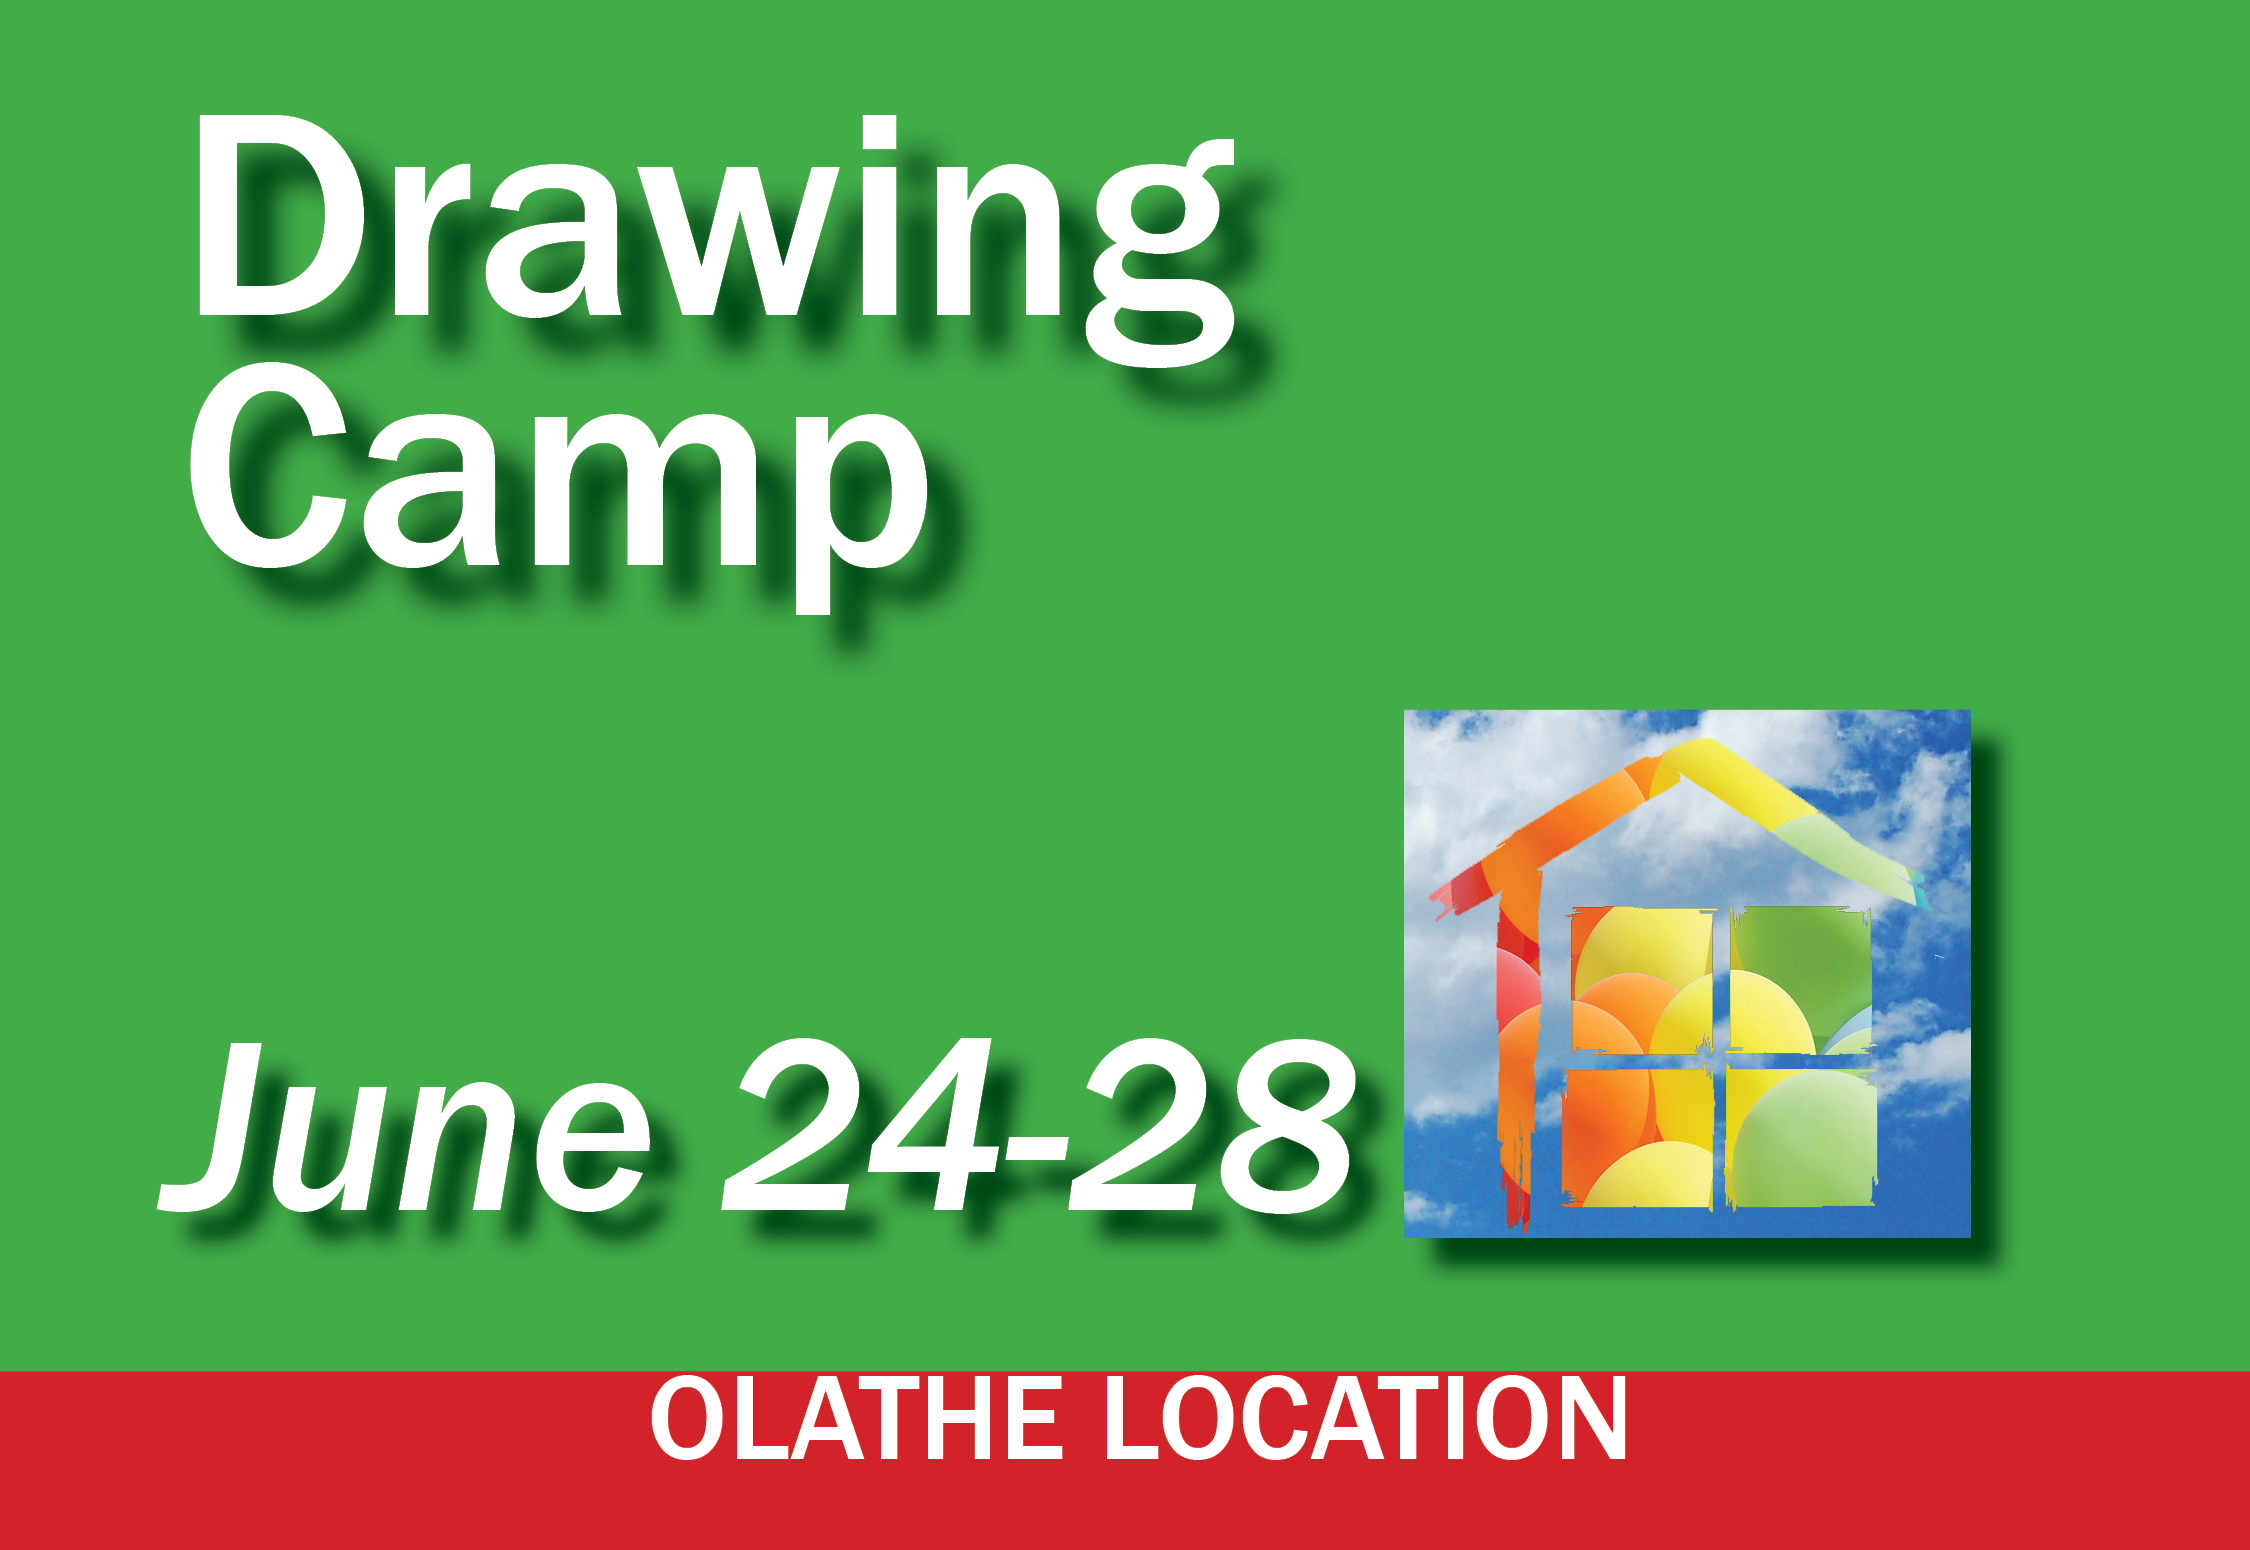 Drawing june 24 camp icon.jpg